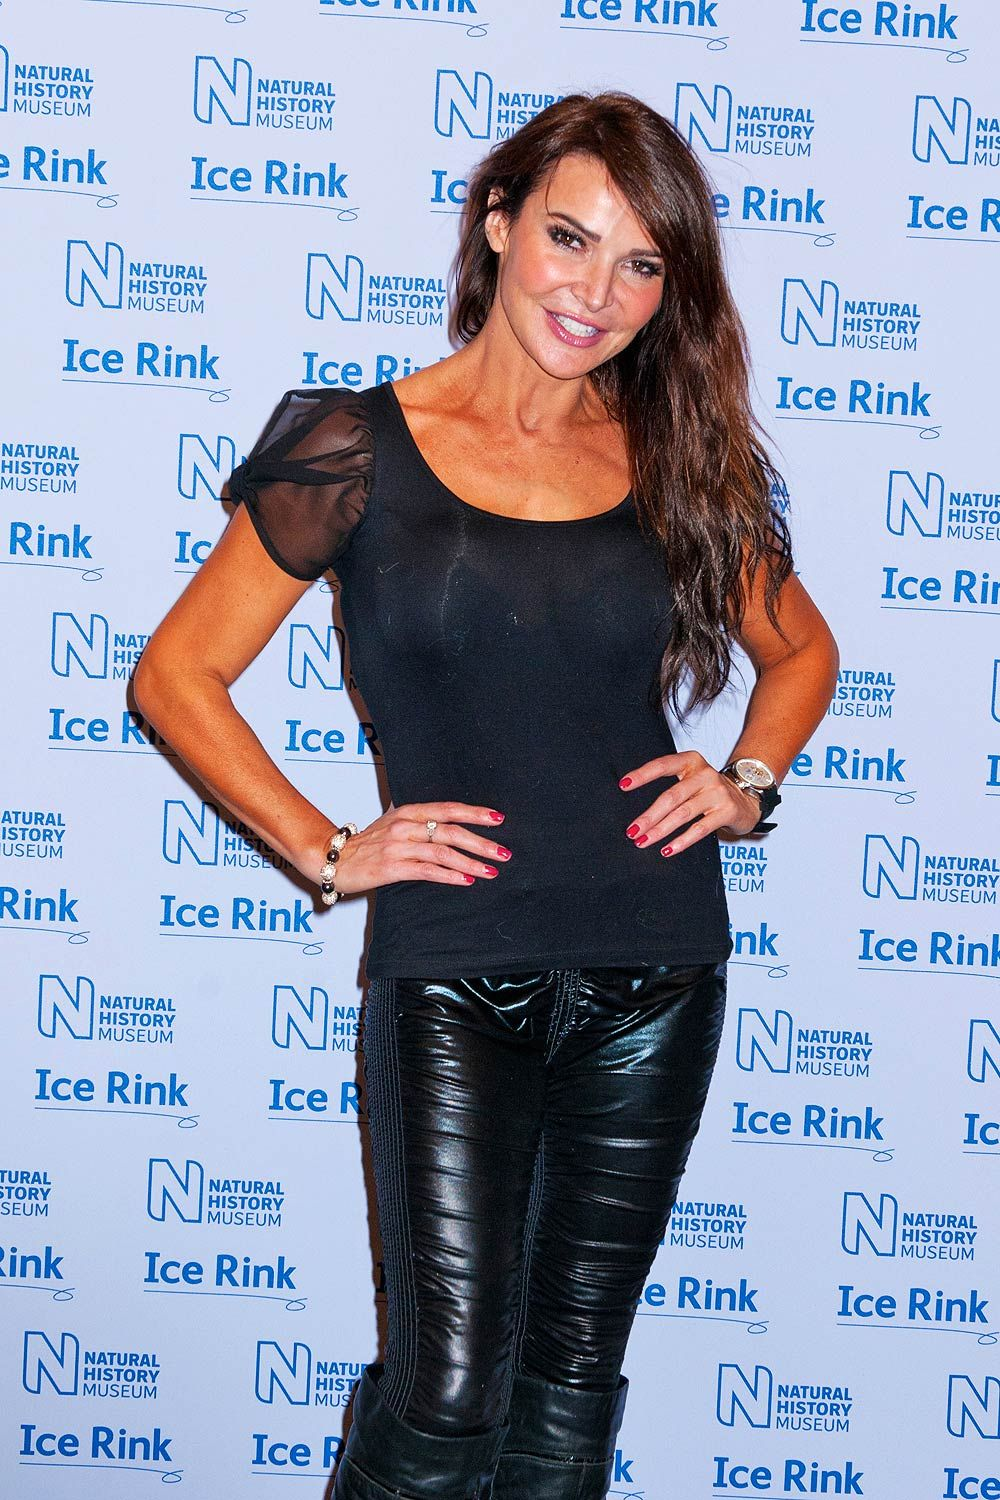 Lizzie Cundy NATURAL HISTORY MUSEUM | Lizzie Cundy attend the launch of the Natural History Museum - Leather ...